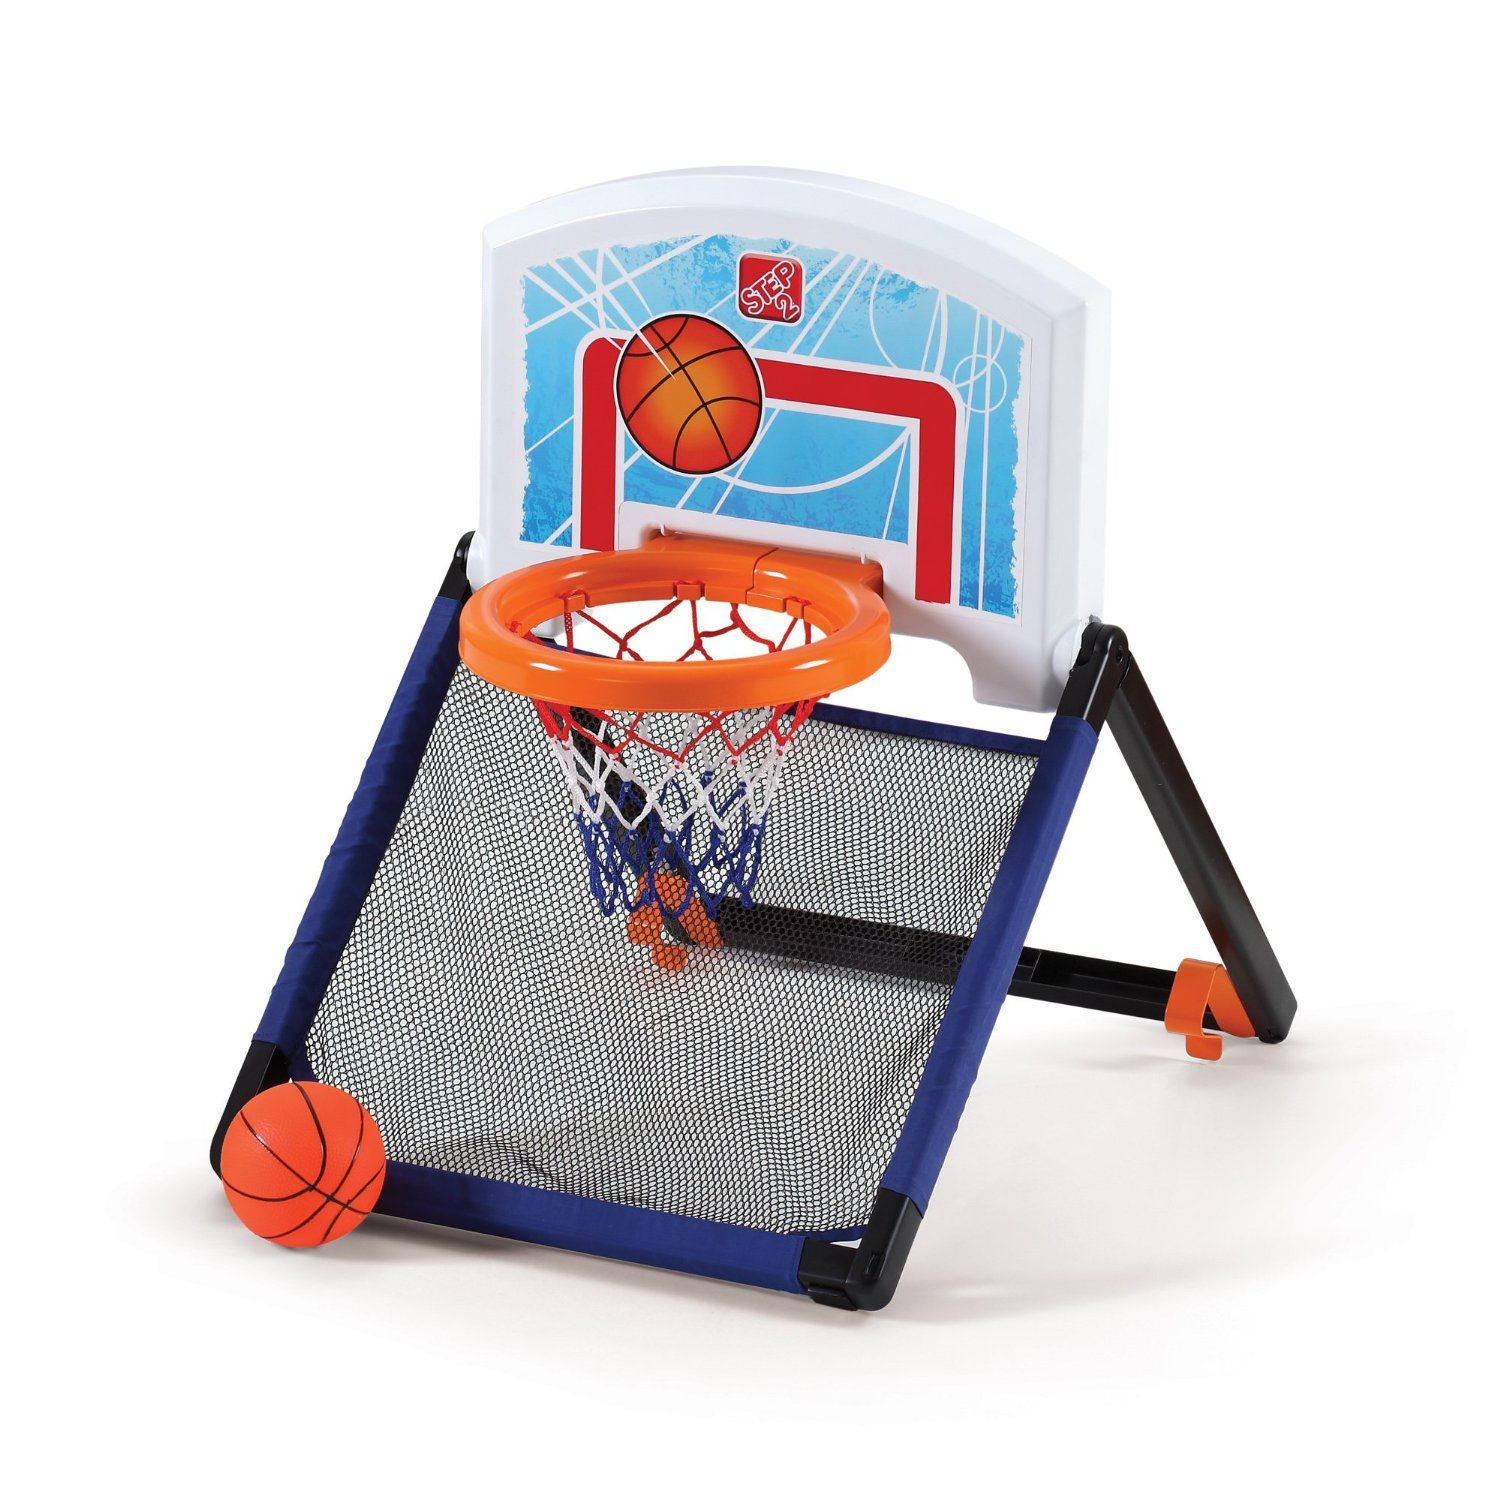 Robot Check Toddler Basketball Hoop Toddler Basketball Kid Toys